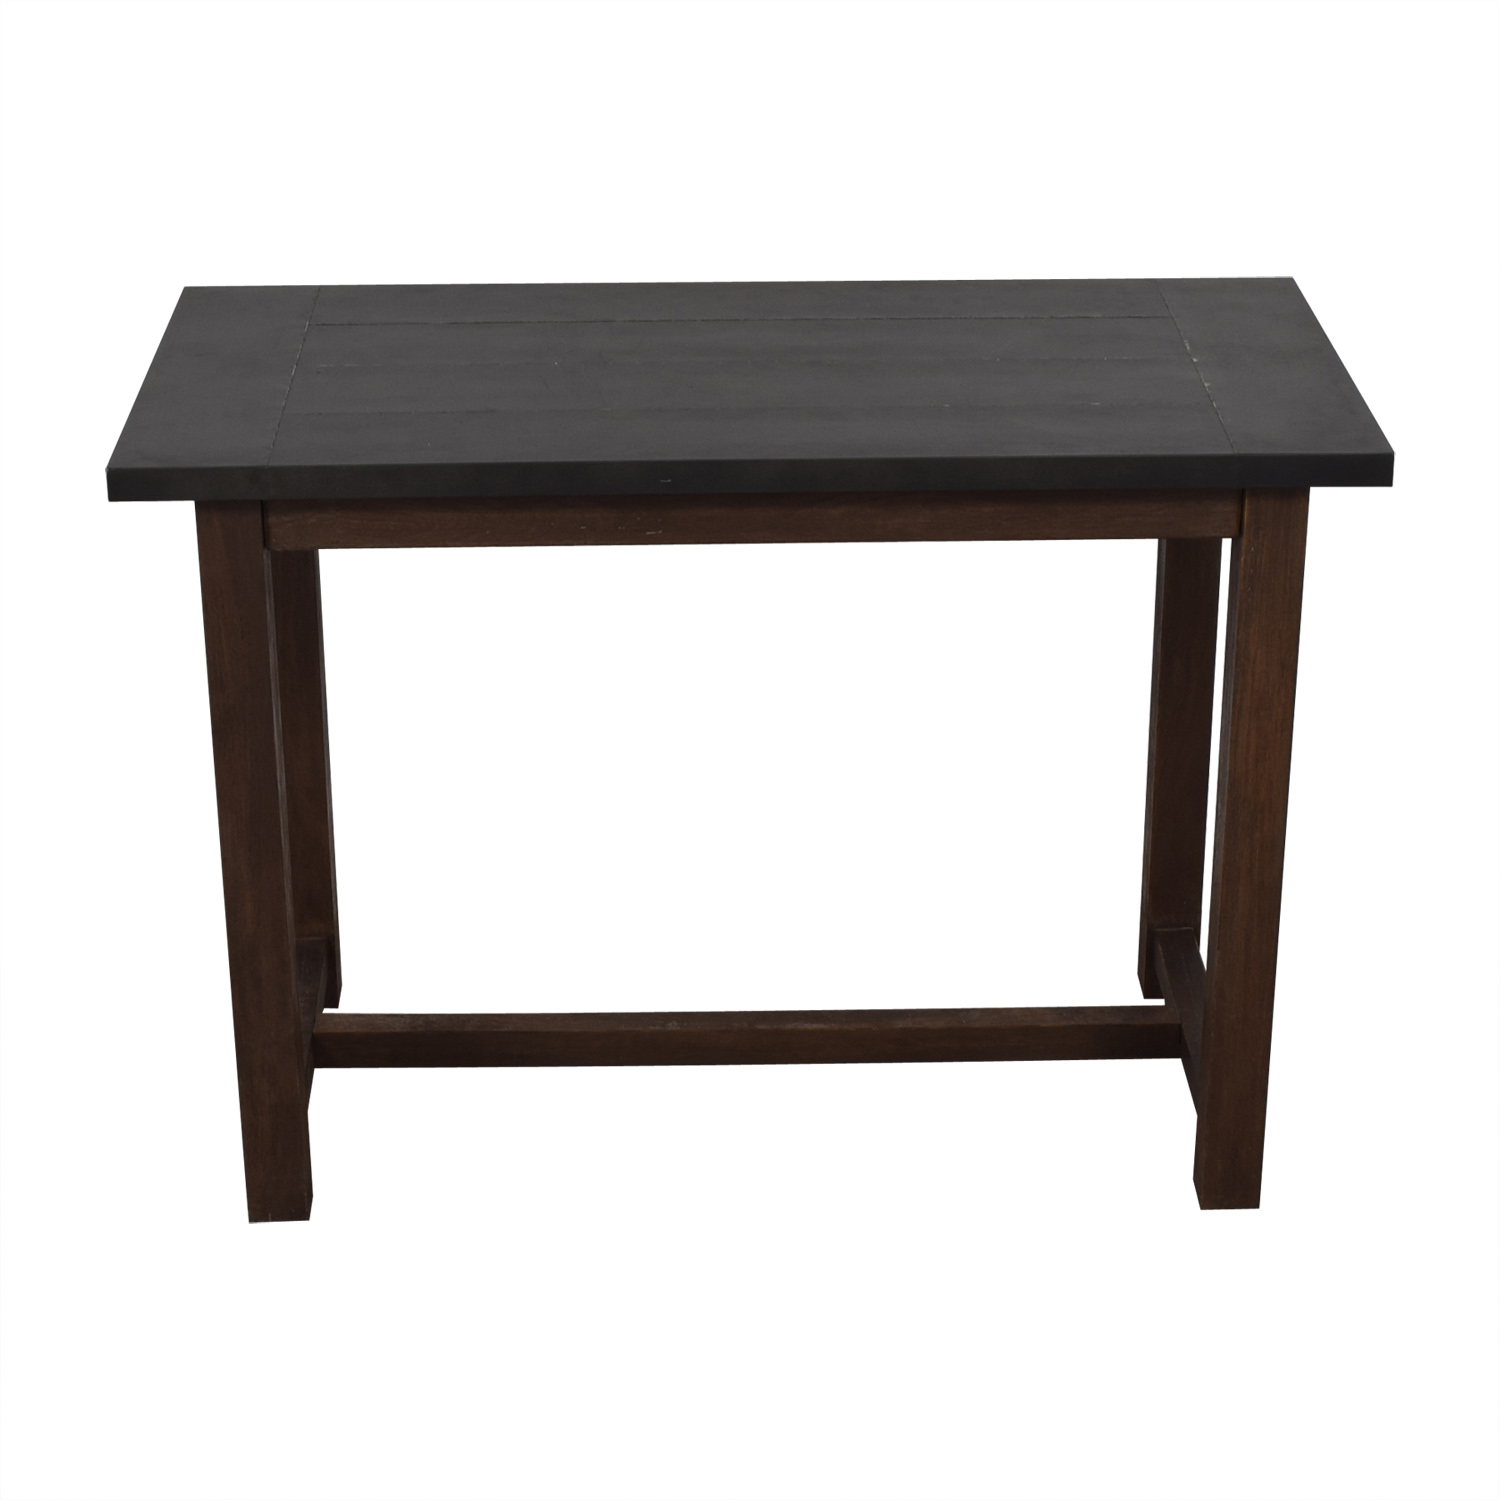 Crate & Barrel Crate & Barrel High-Top Table on sale